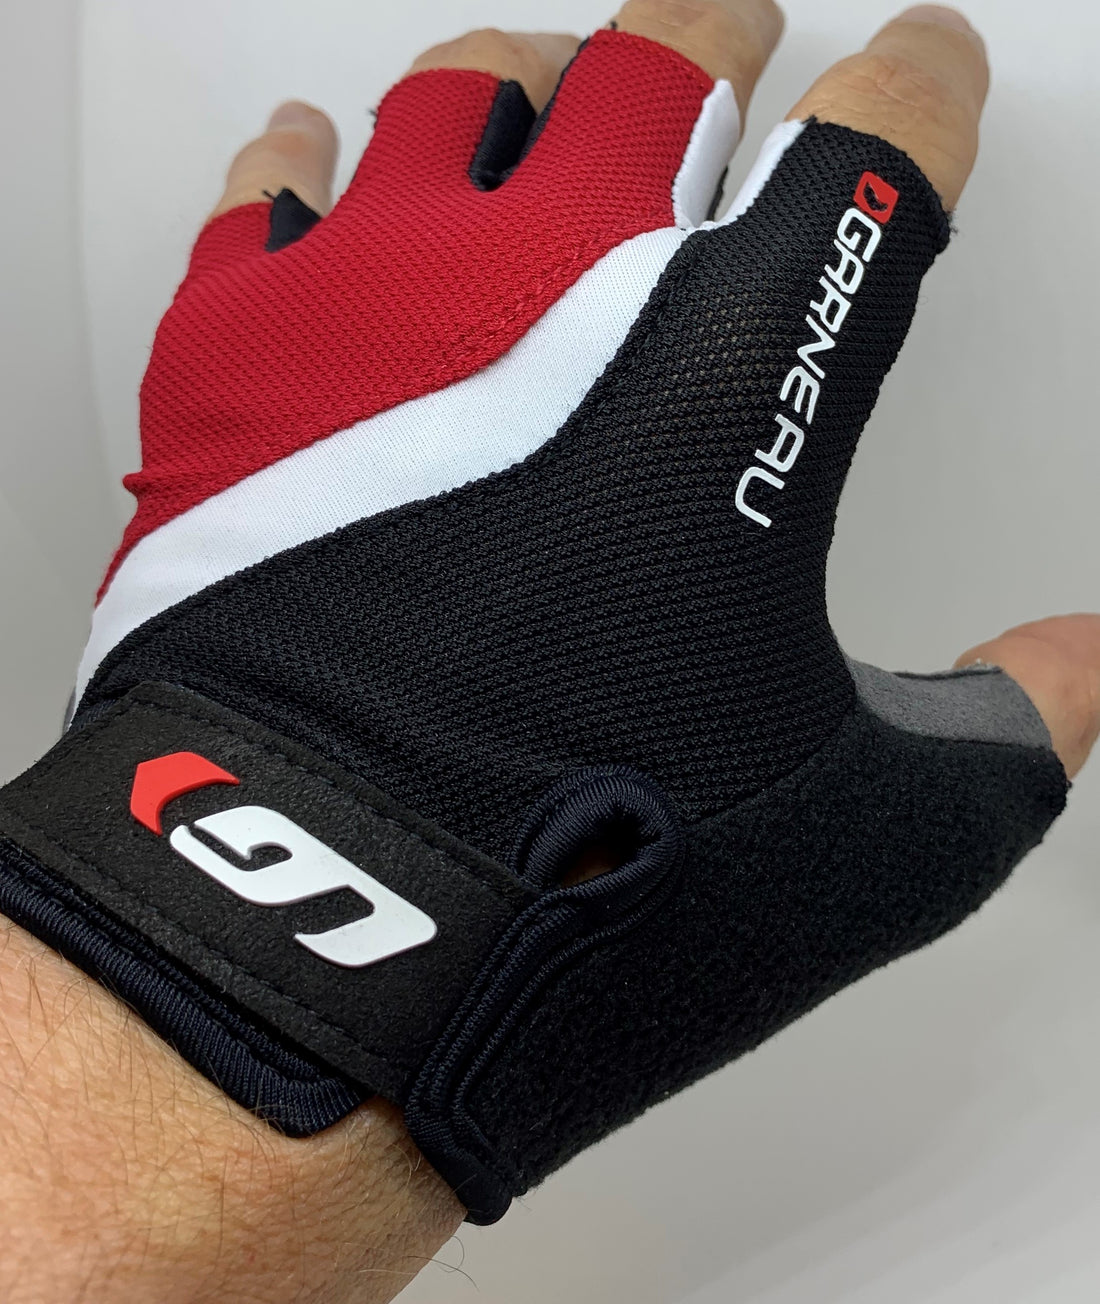 BIOGEL RX-V Cycling Gloves Men's Red Black Medium